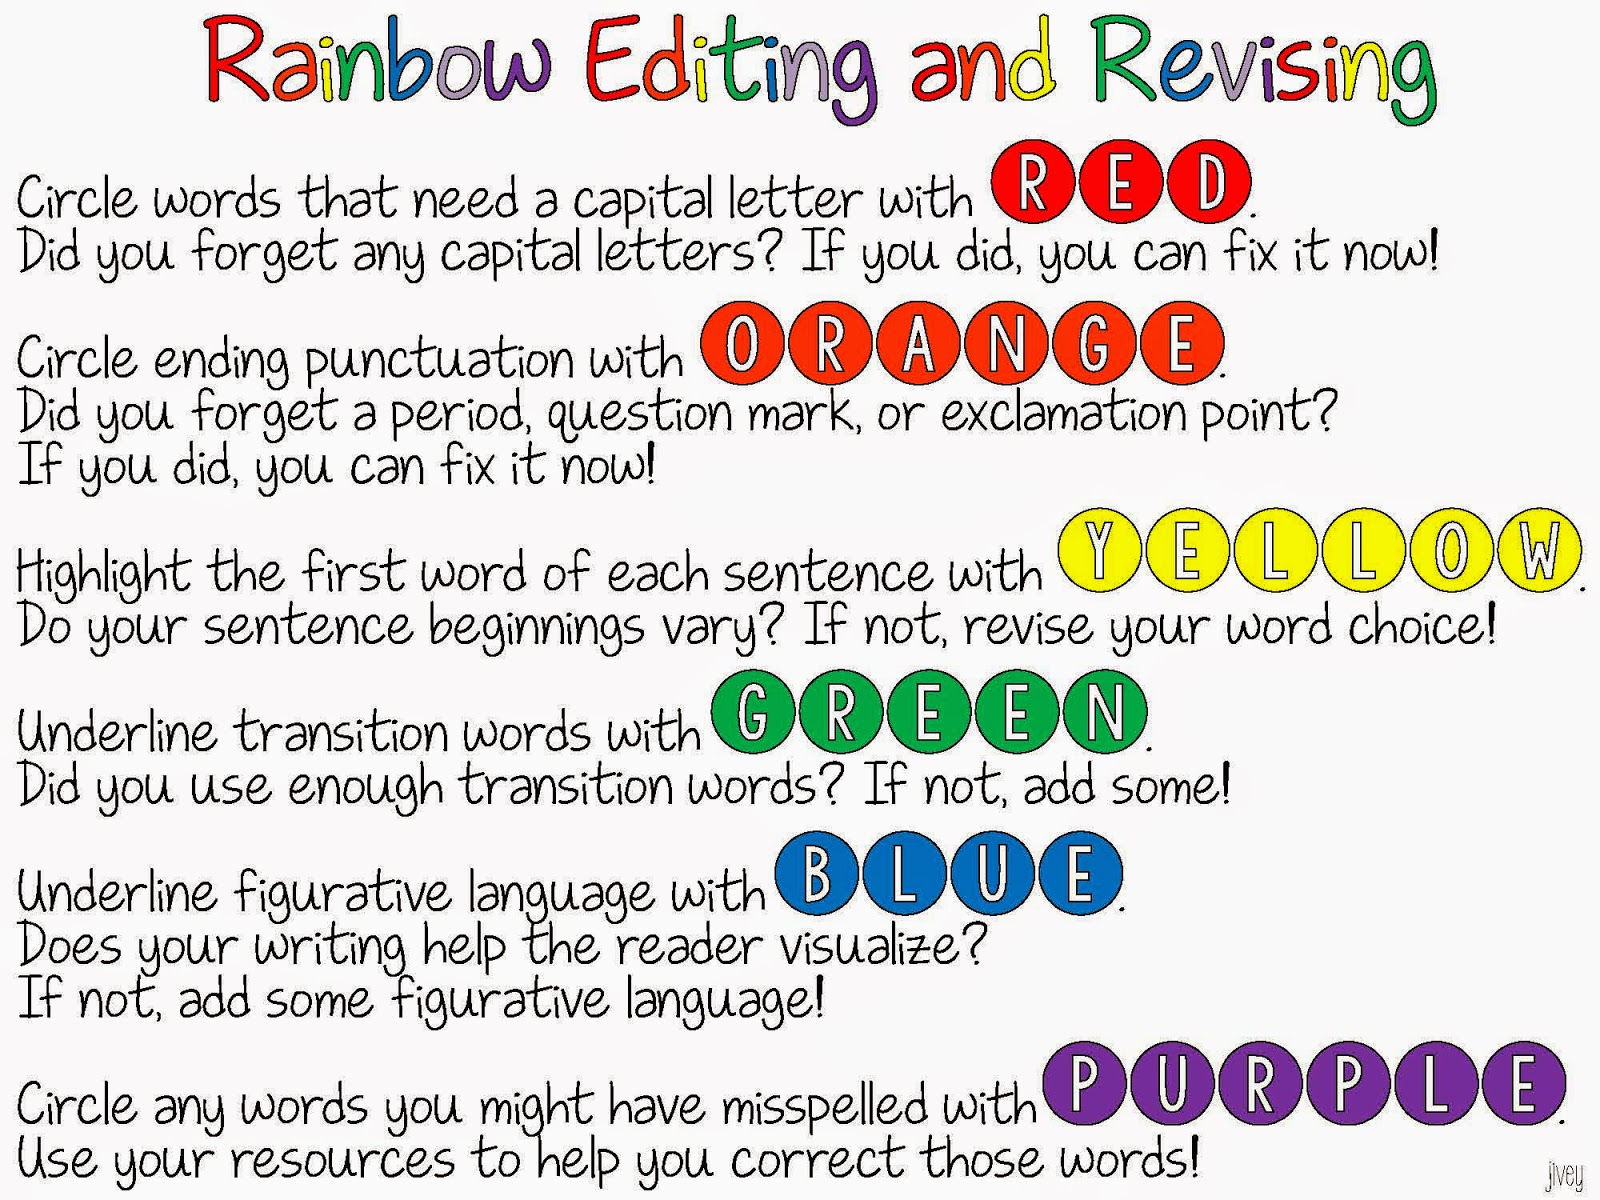 Classroom Revision Ideas ~ Rainbow editing and revising freebie ideas by jivey